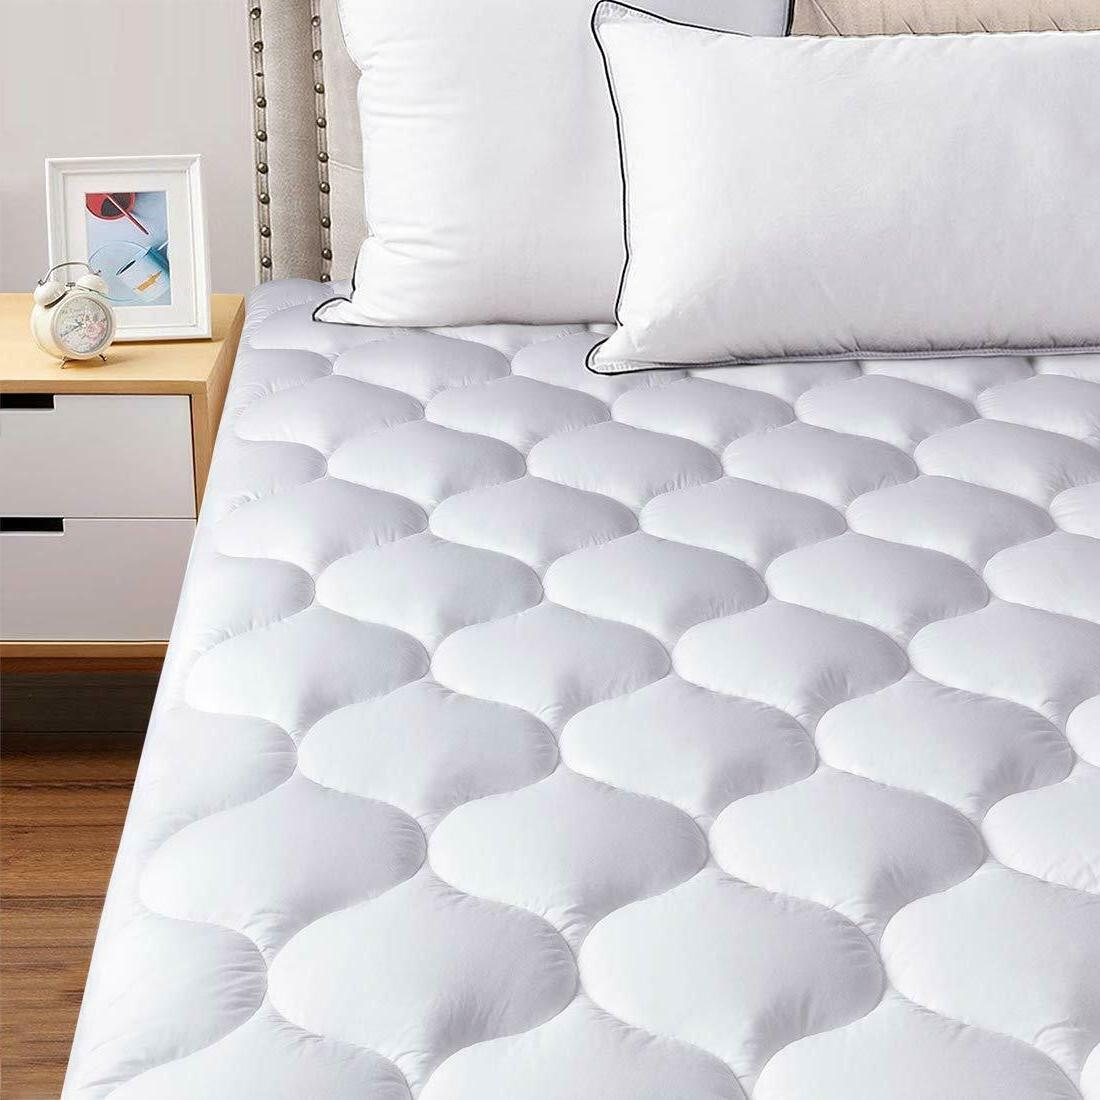 Mattress Topper Cover Soft Breathable Hypoallergenic Cooling